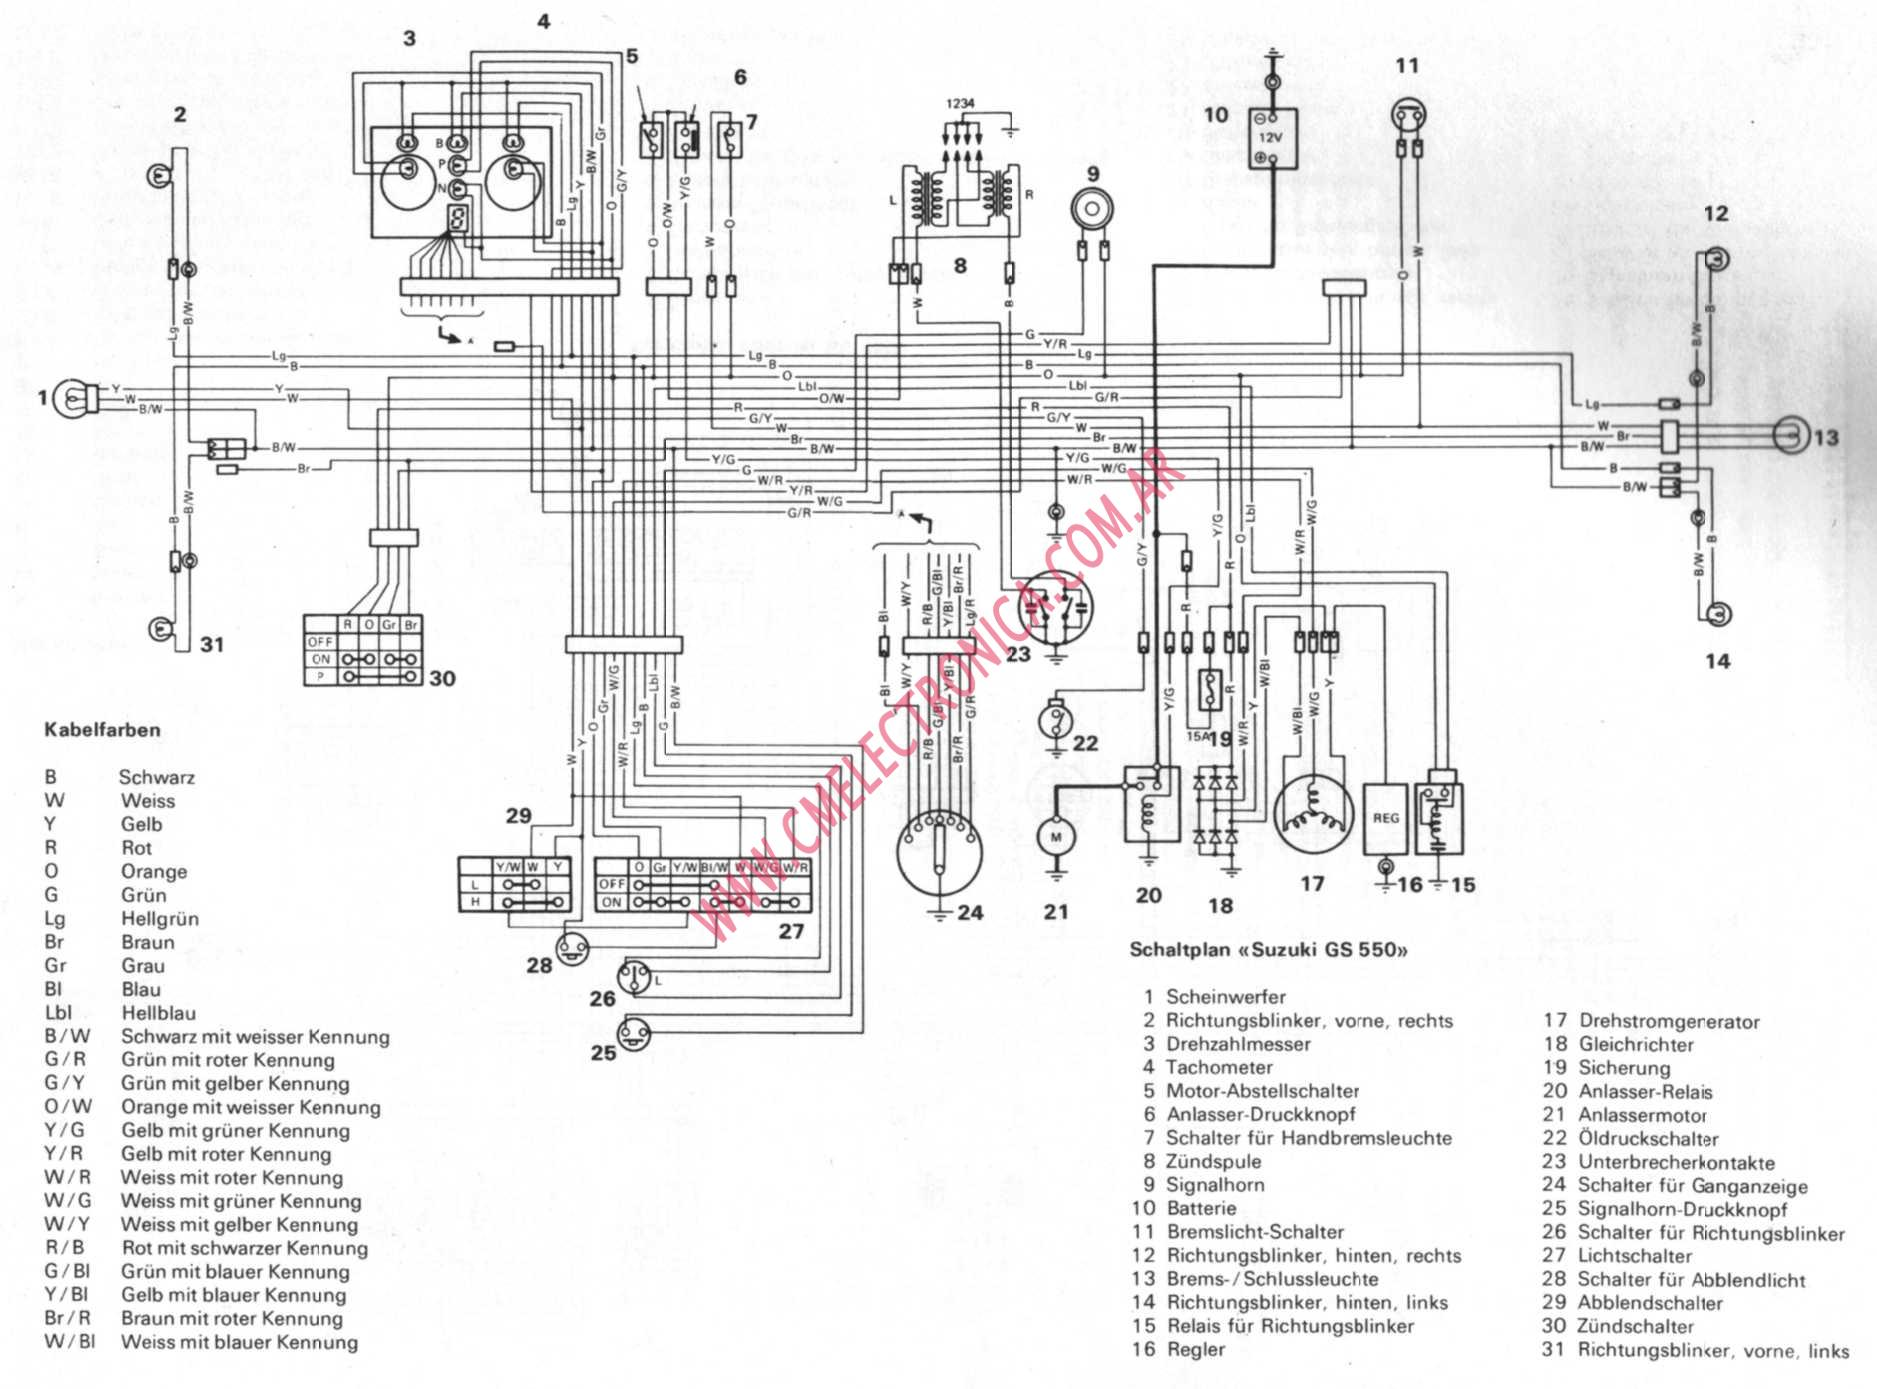 suzuki gs550 suzuki gs550 wiring diagram suzuki gsxr 750 wiring diagram 1978 gs750 wiring diagram at nearapp.co